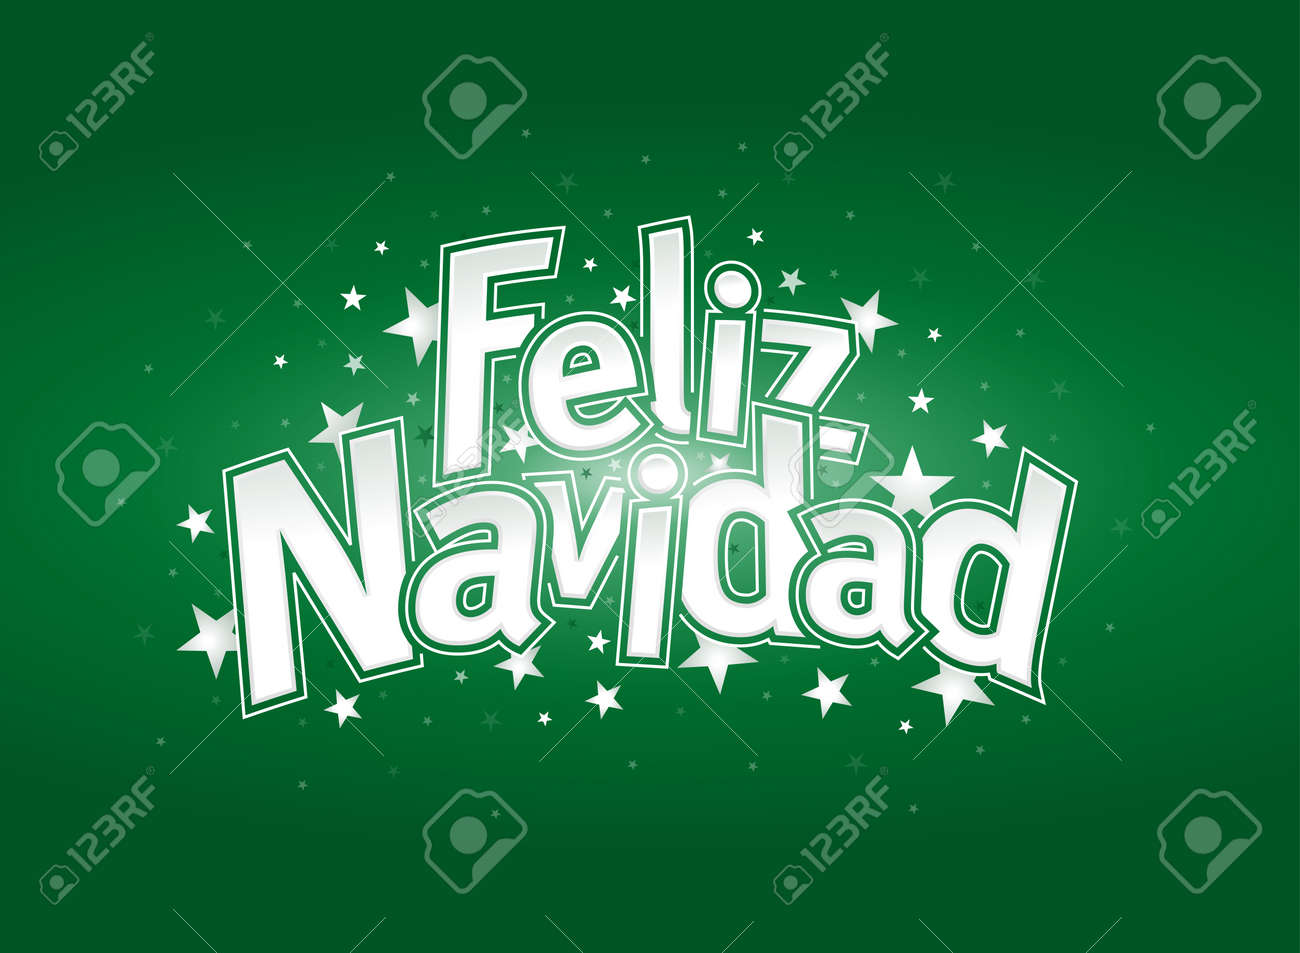 how to say merry christmas in spanish curtain design lajada - How To Say Christmas In Spanish